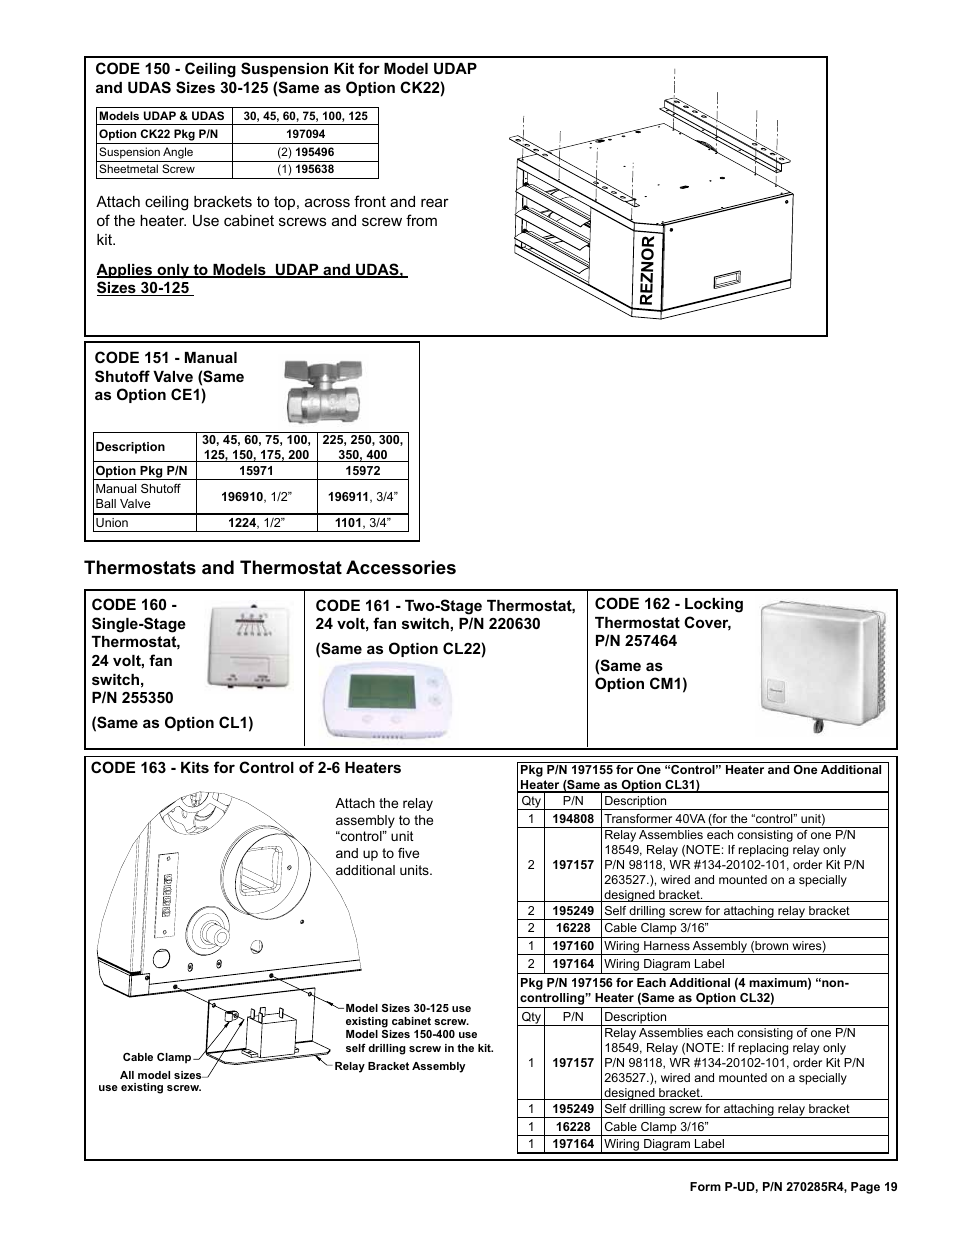 reznor udbp parts manuals page19 control of 2 6 heaters 19, option ce1 19, option ck22 19 reznor reznor udap wiring diagram at aneh.co